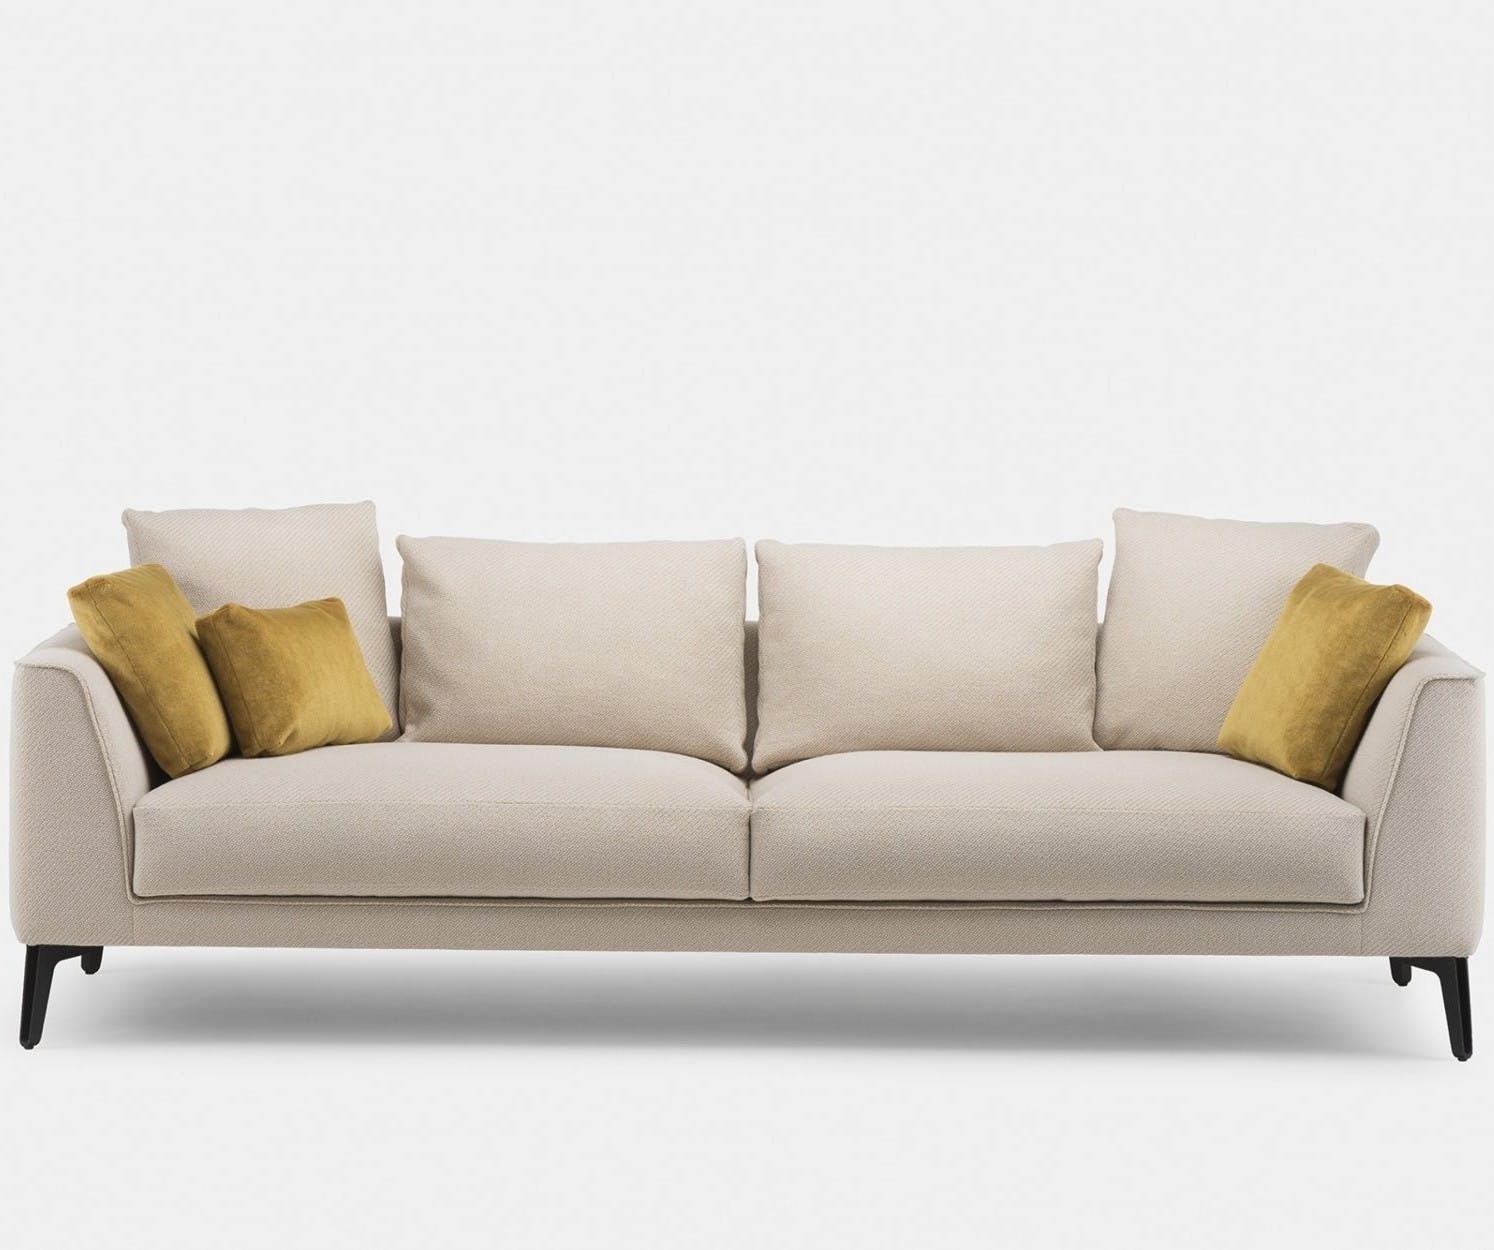 401 Mcqueen Sofa By Matthew Hilton In Coda 2 422 Fabric With Scatter Cushions In Pillar 461  Front3Web 1840X1250